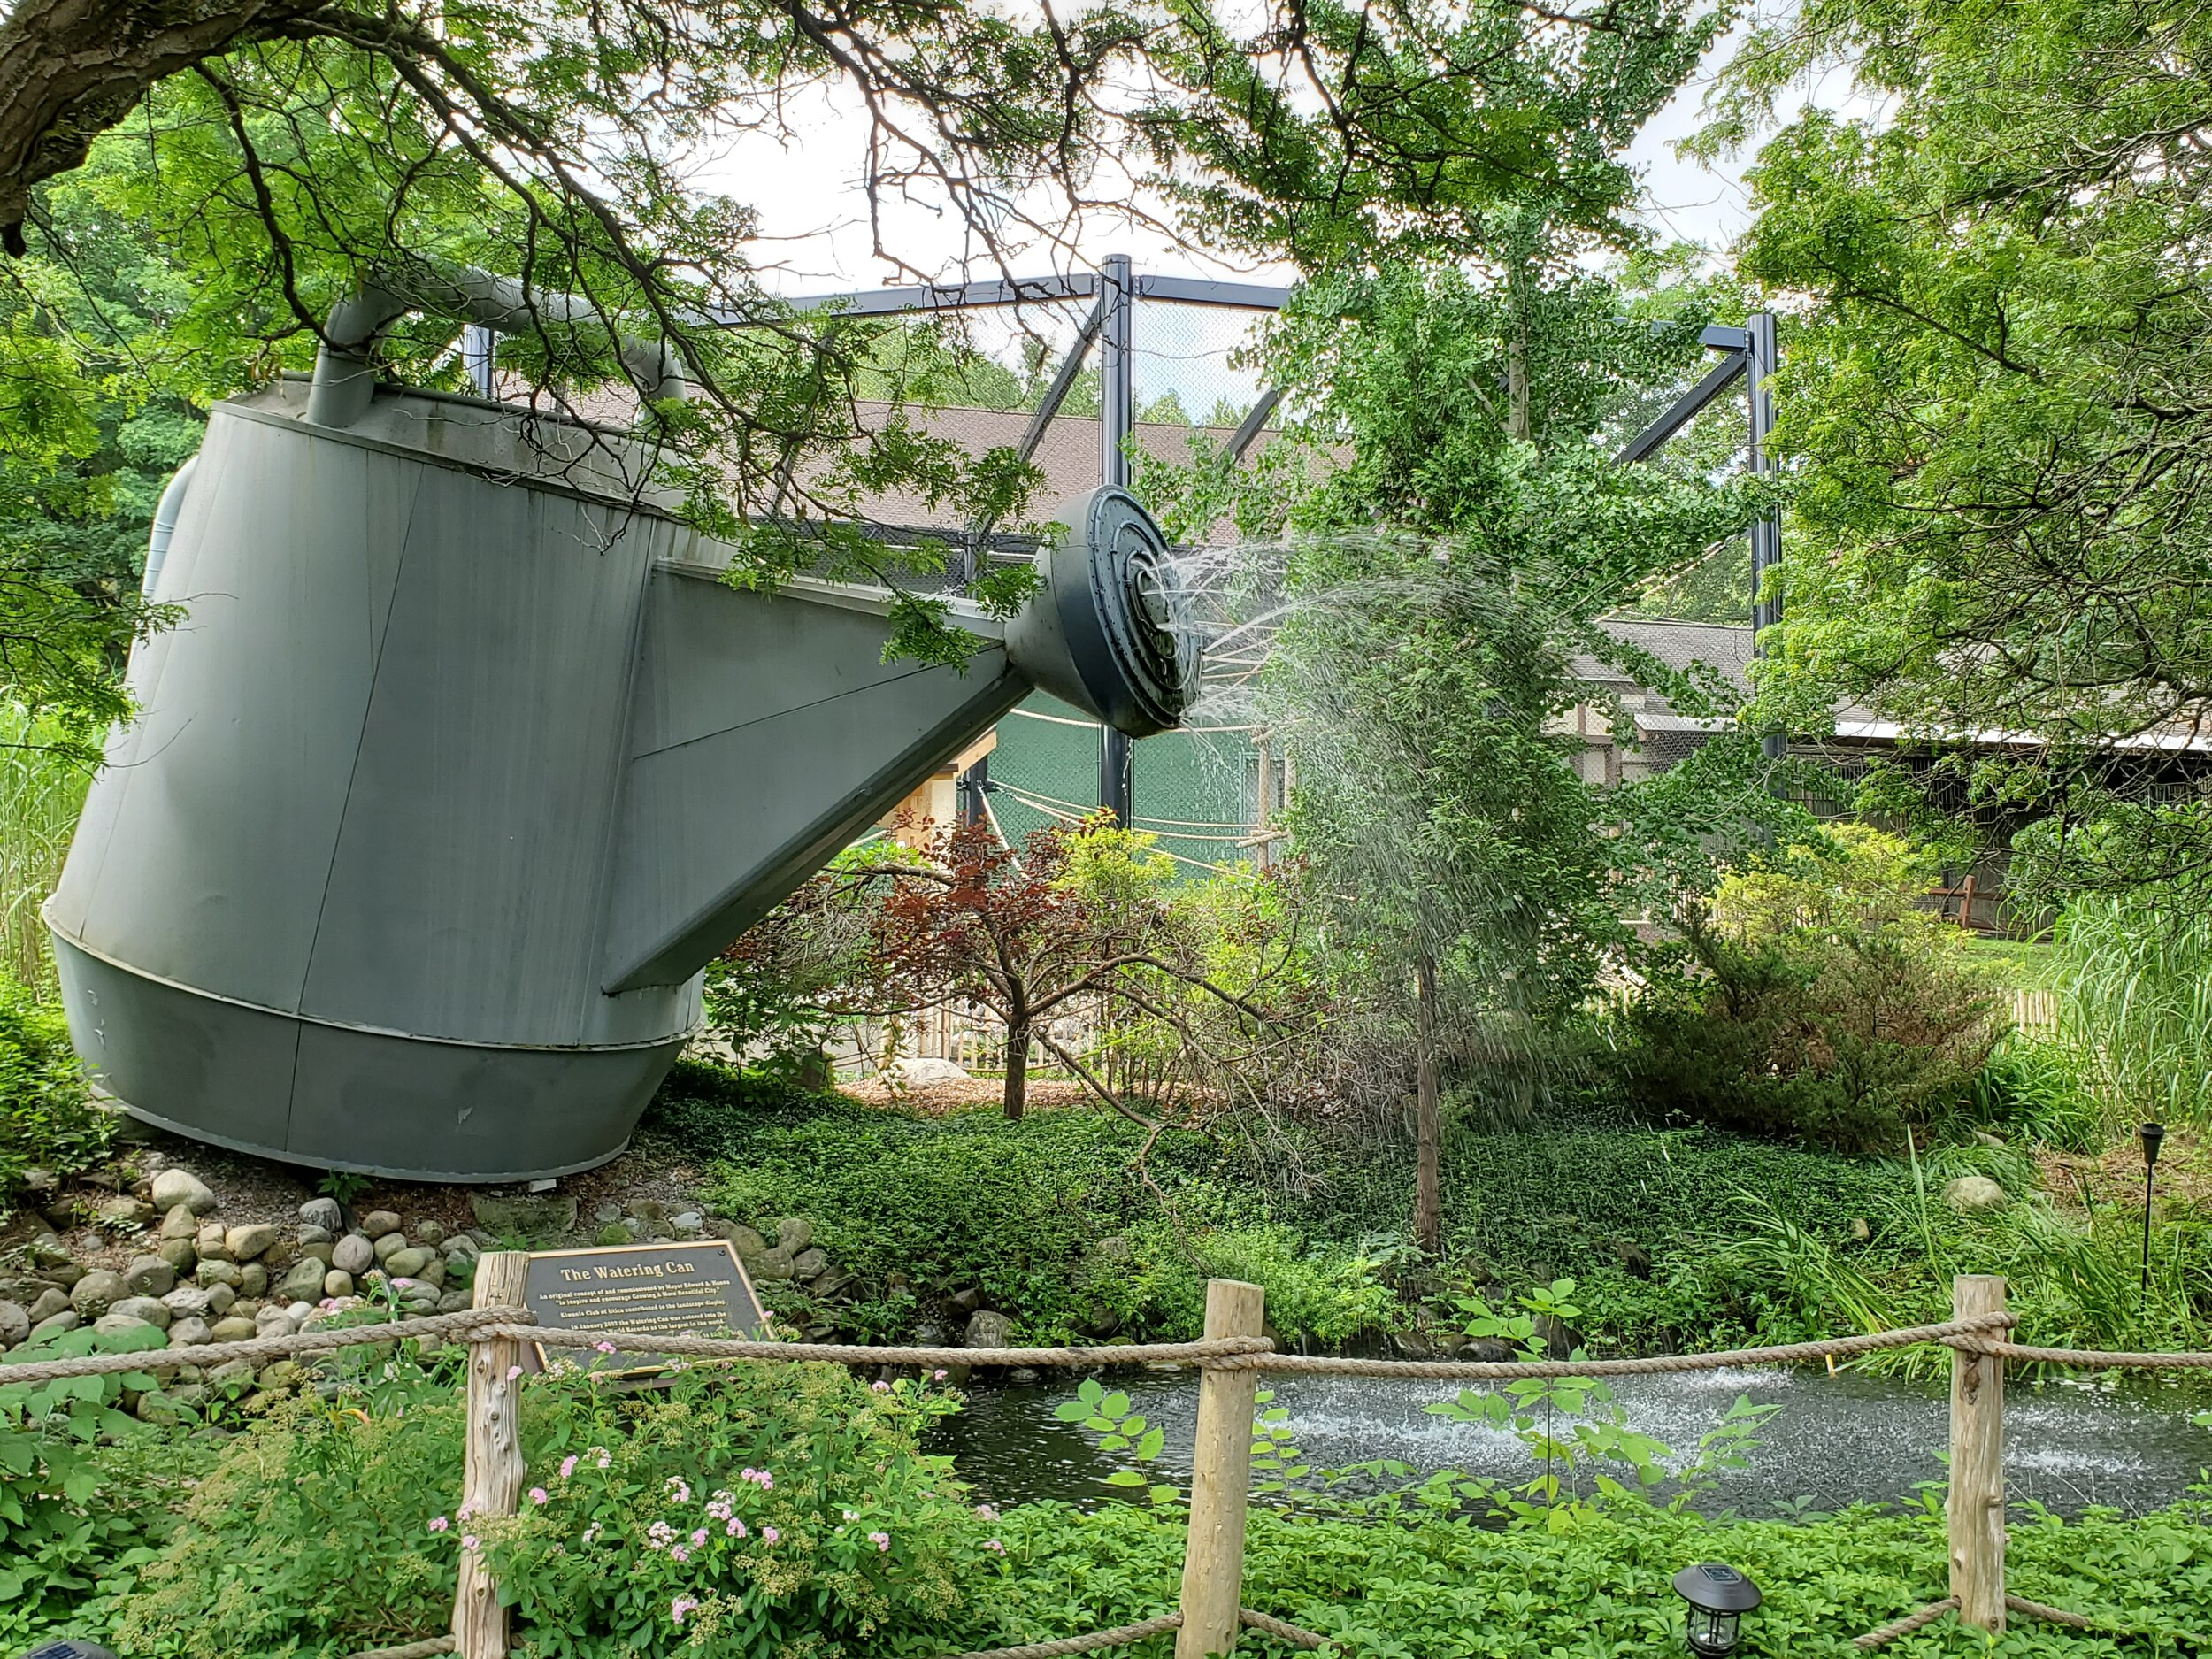 World's largest watering can